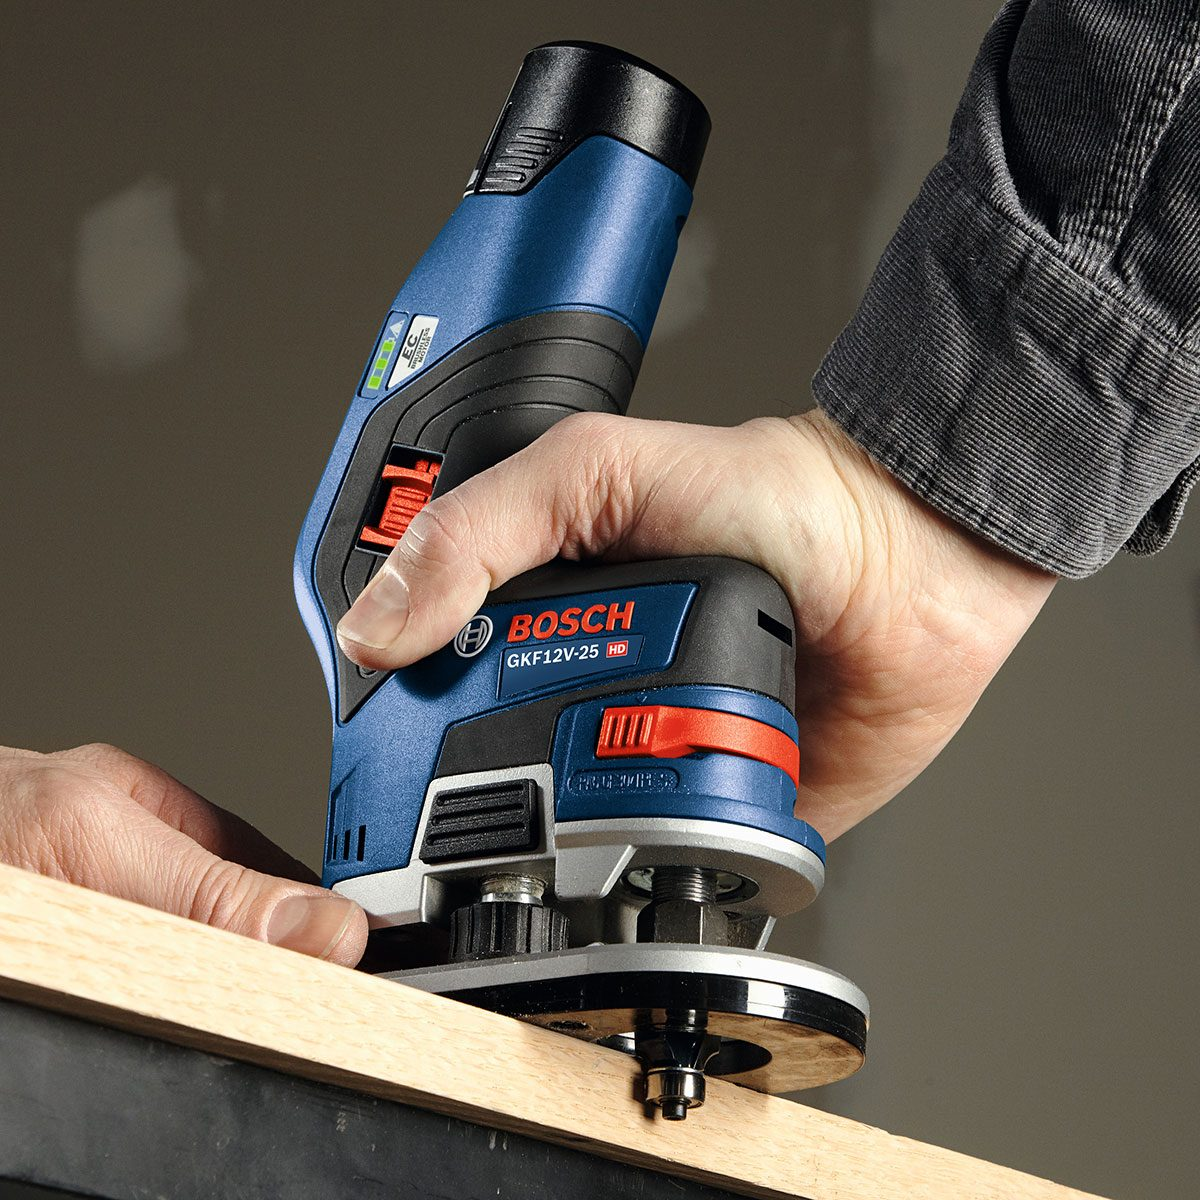 Man Holding a Bosch Router | Construction Pro Tips